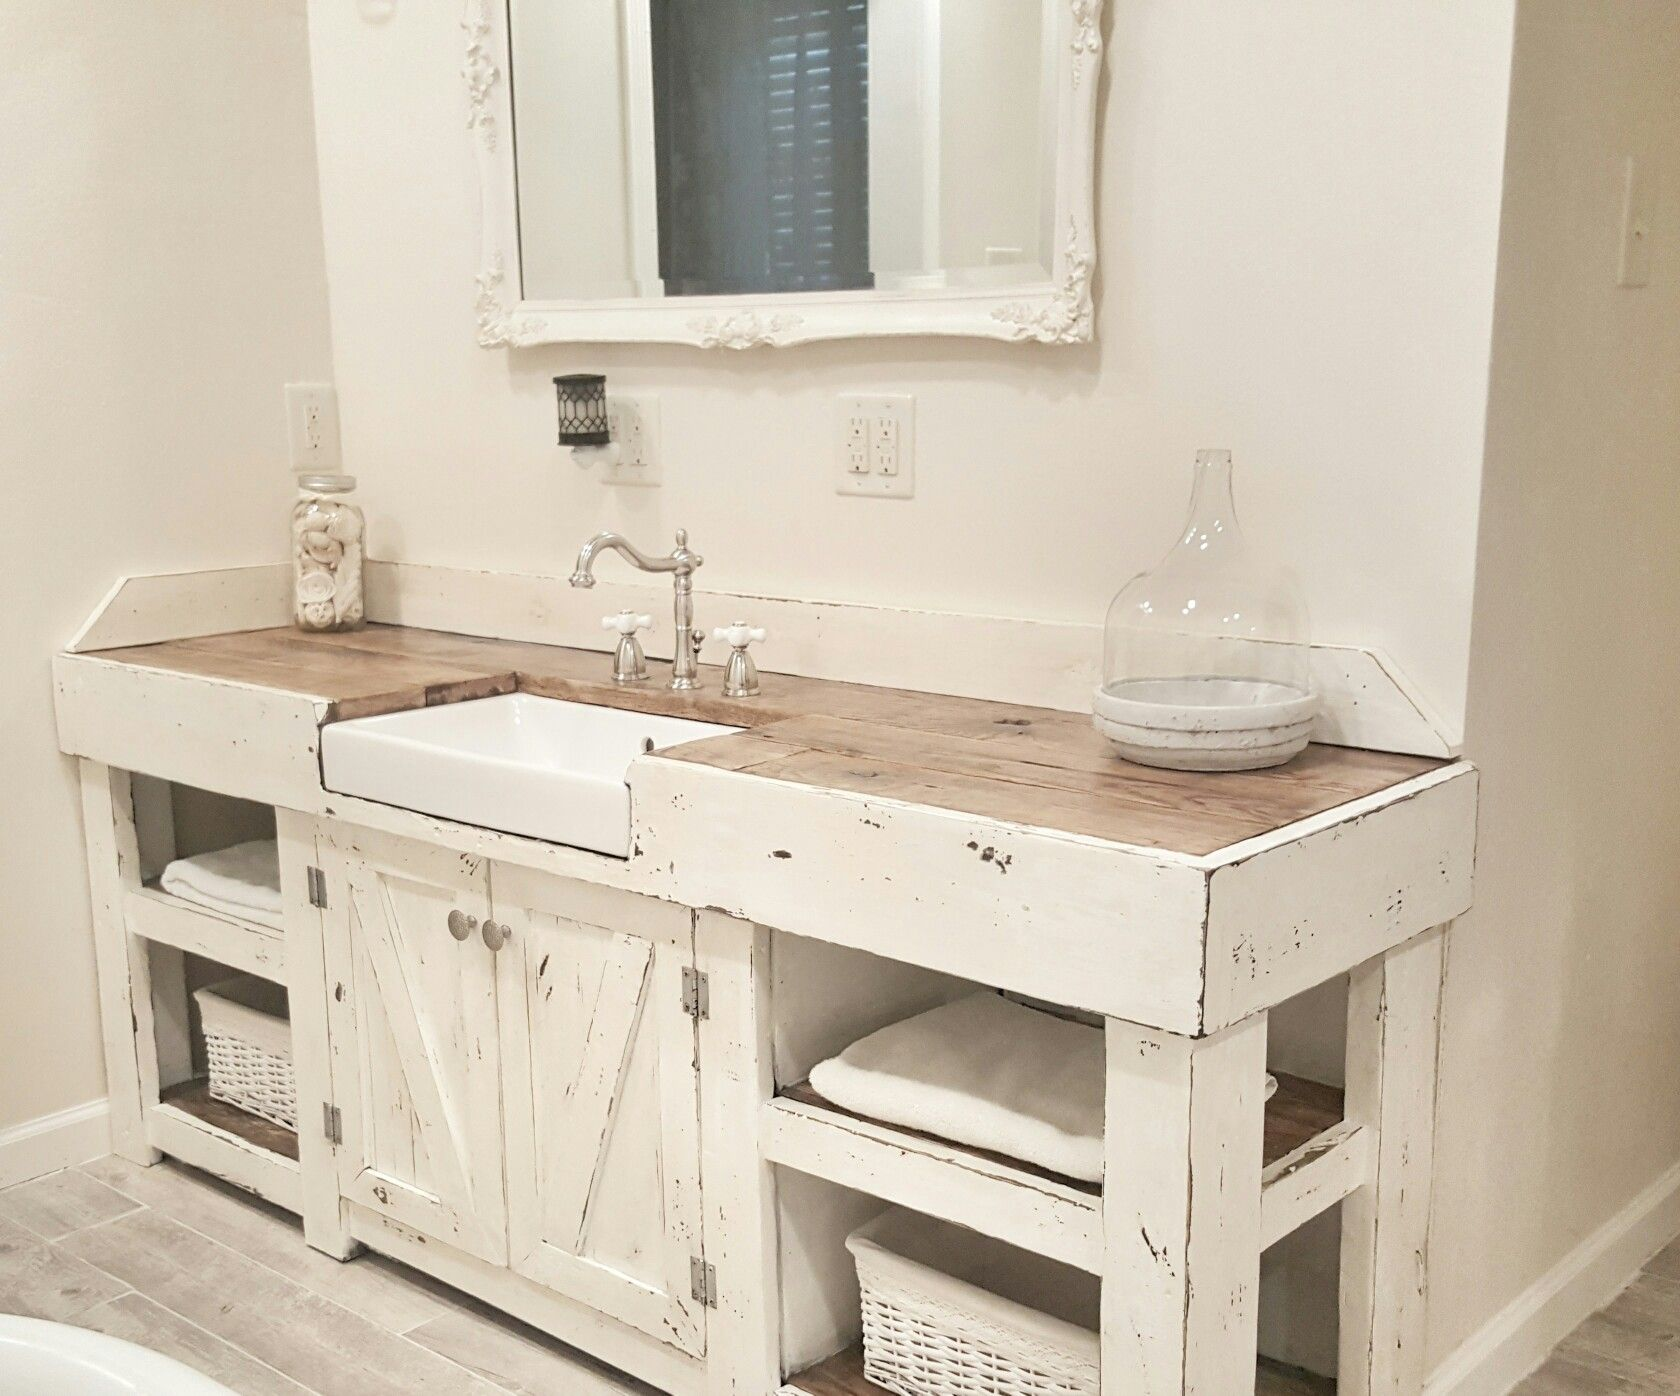 Cottage bathroom farmhouse bathroom farmhouse vanity for Vanity designs for bathrooms